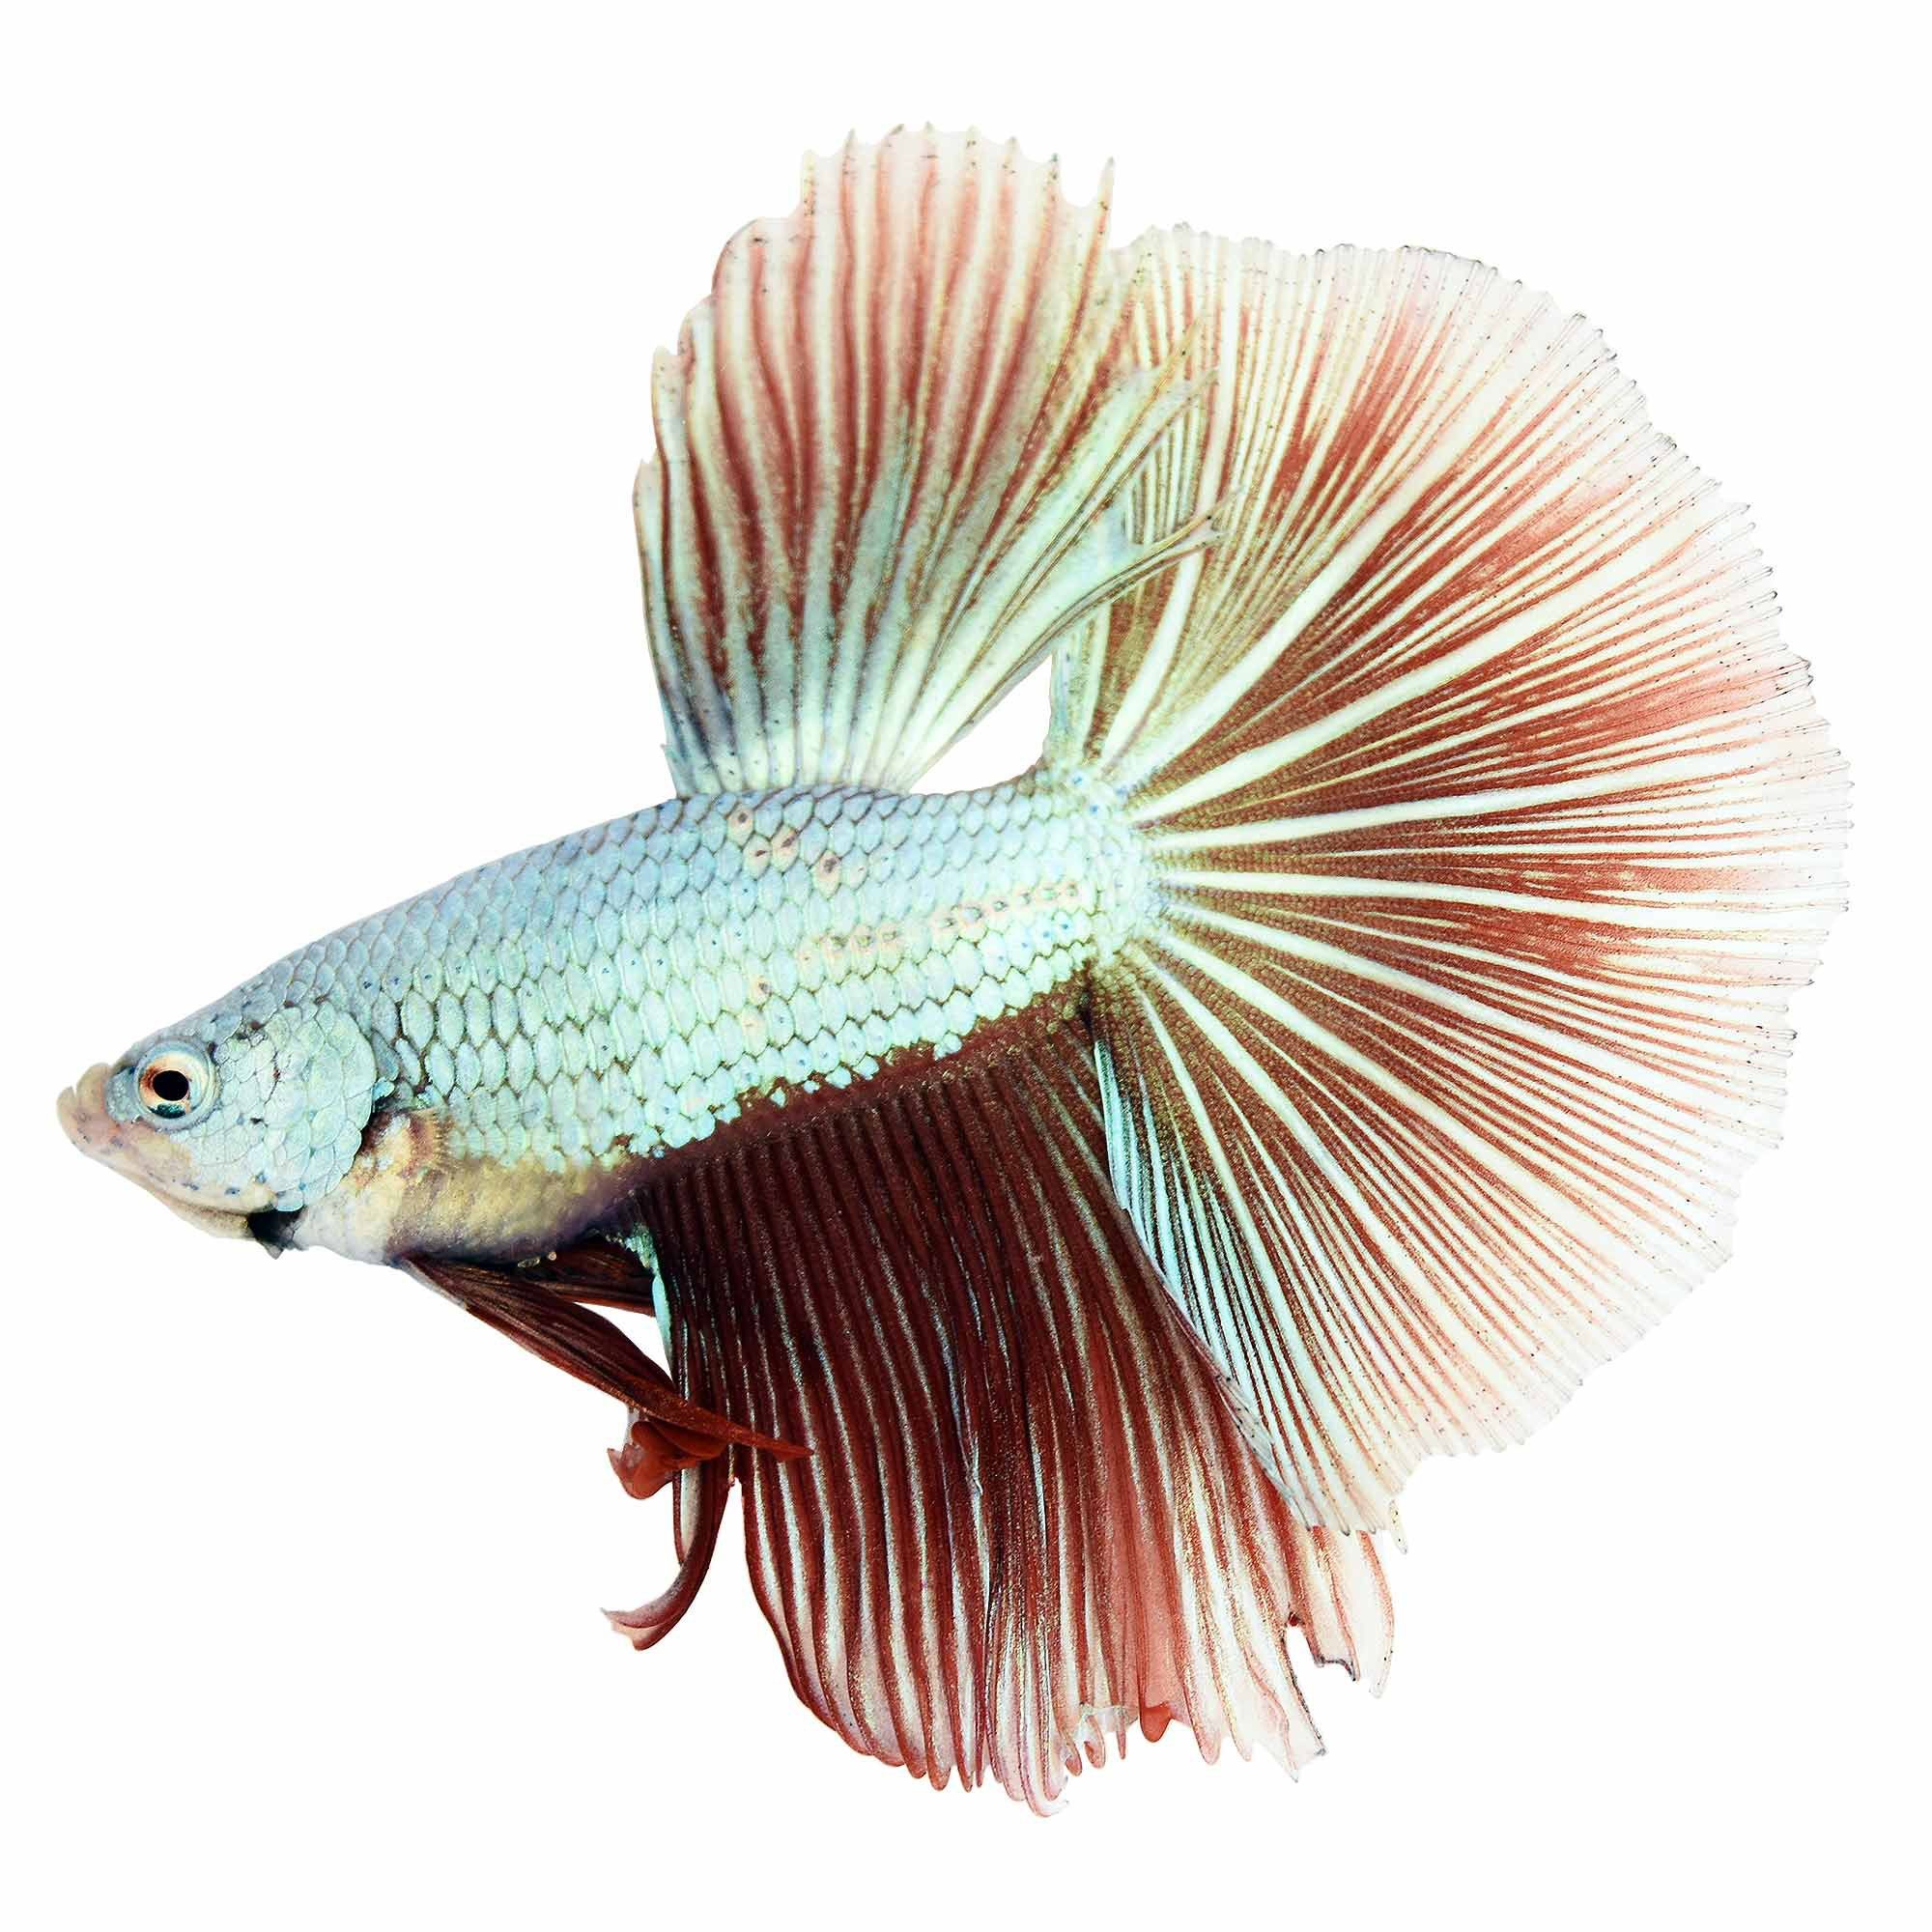 Male Dragonscale Betta Petco Betta Betta Fish Pet Fish